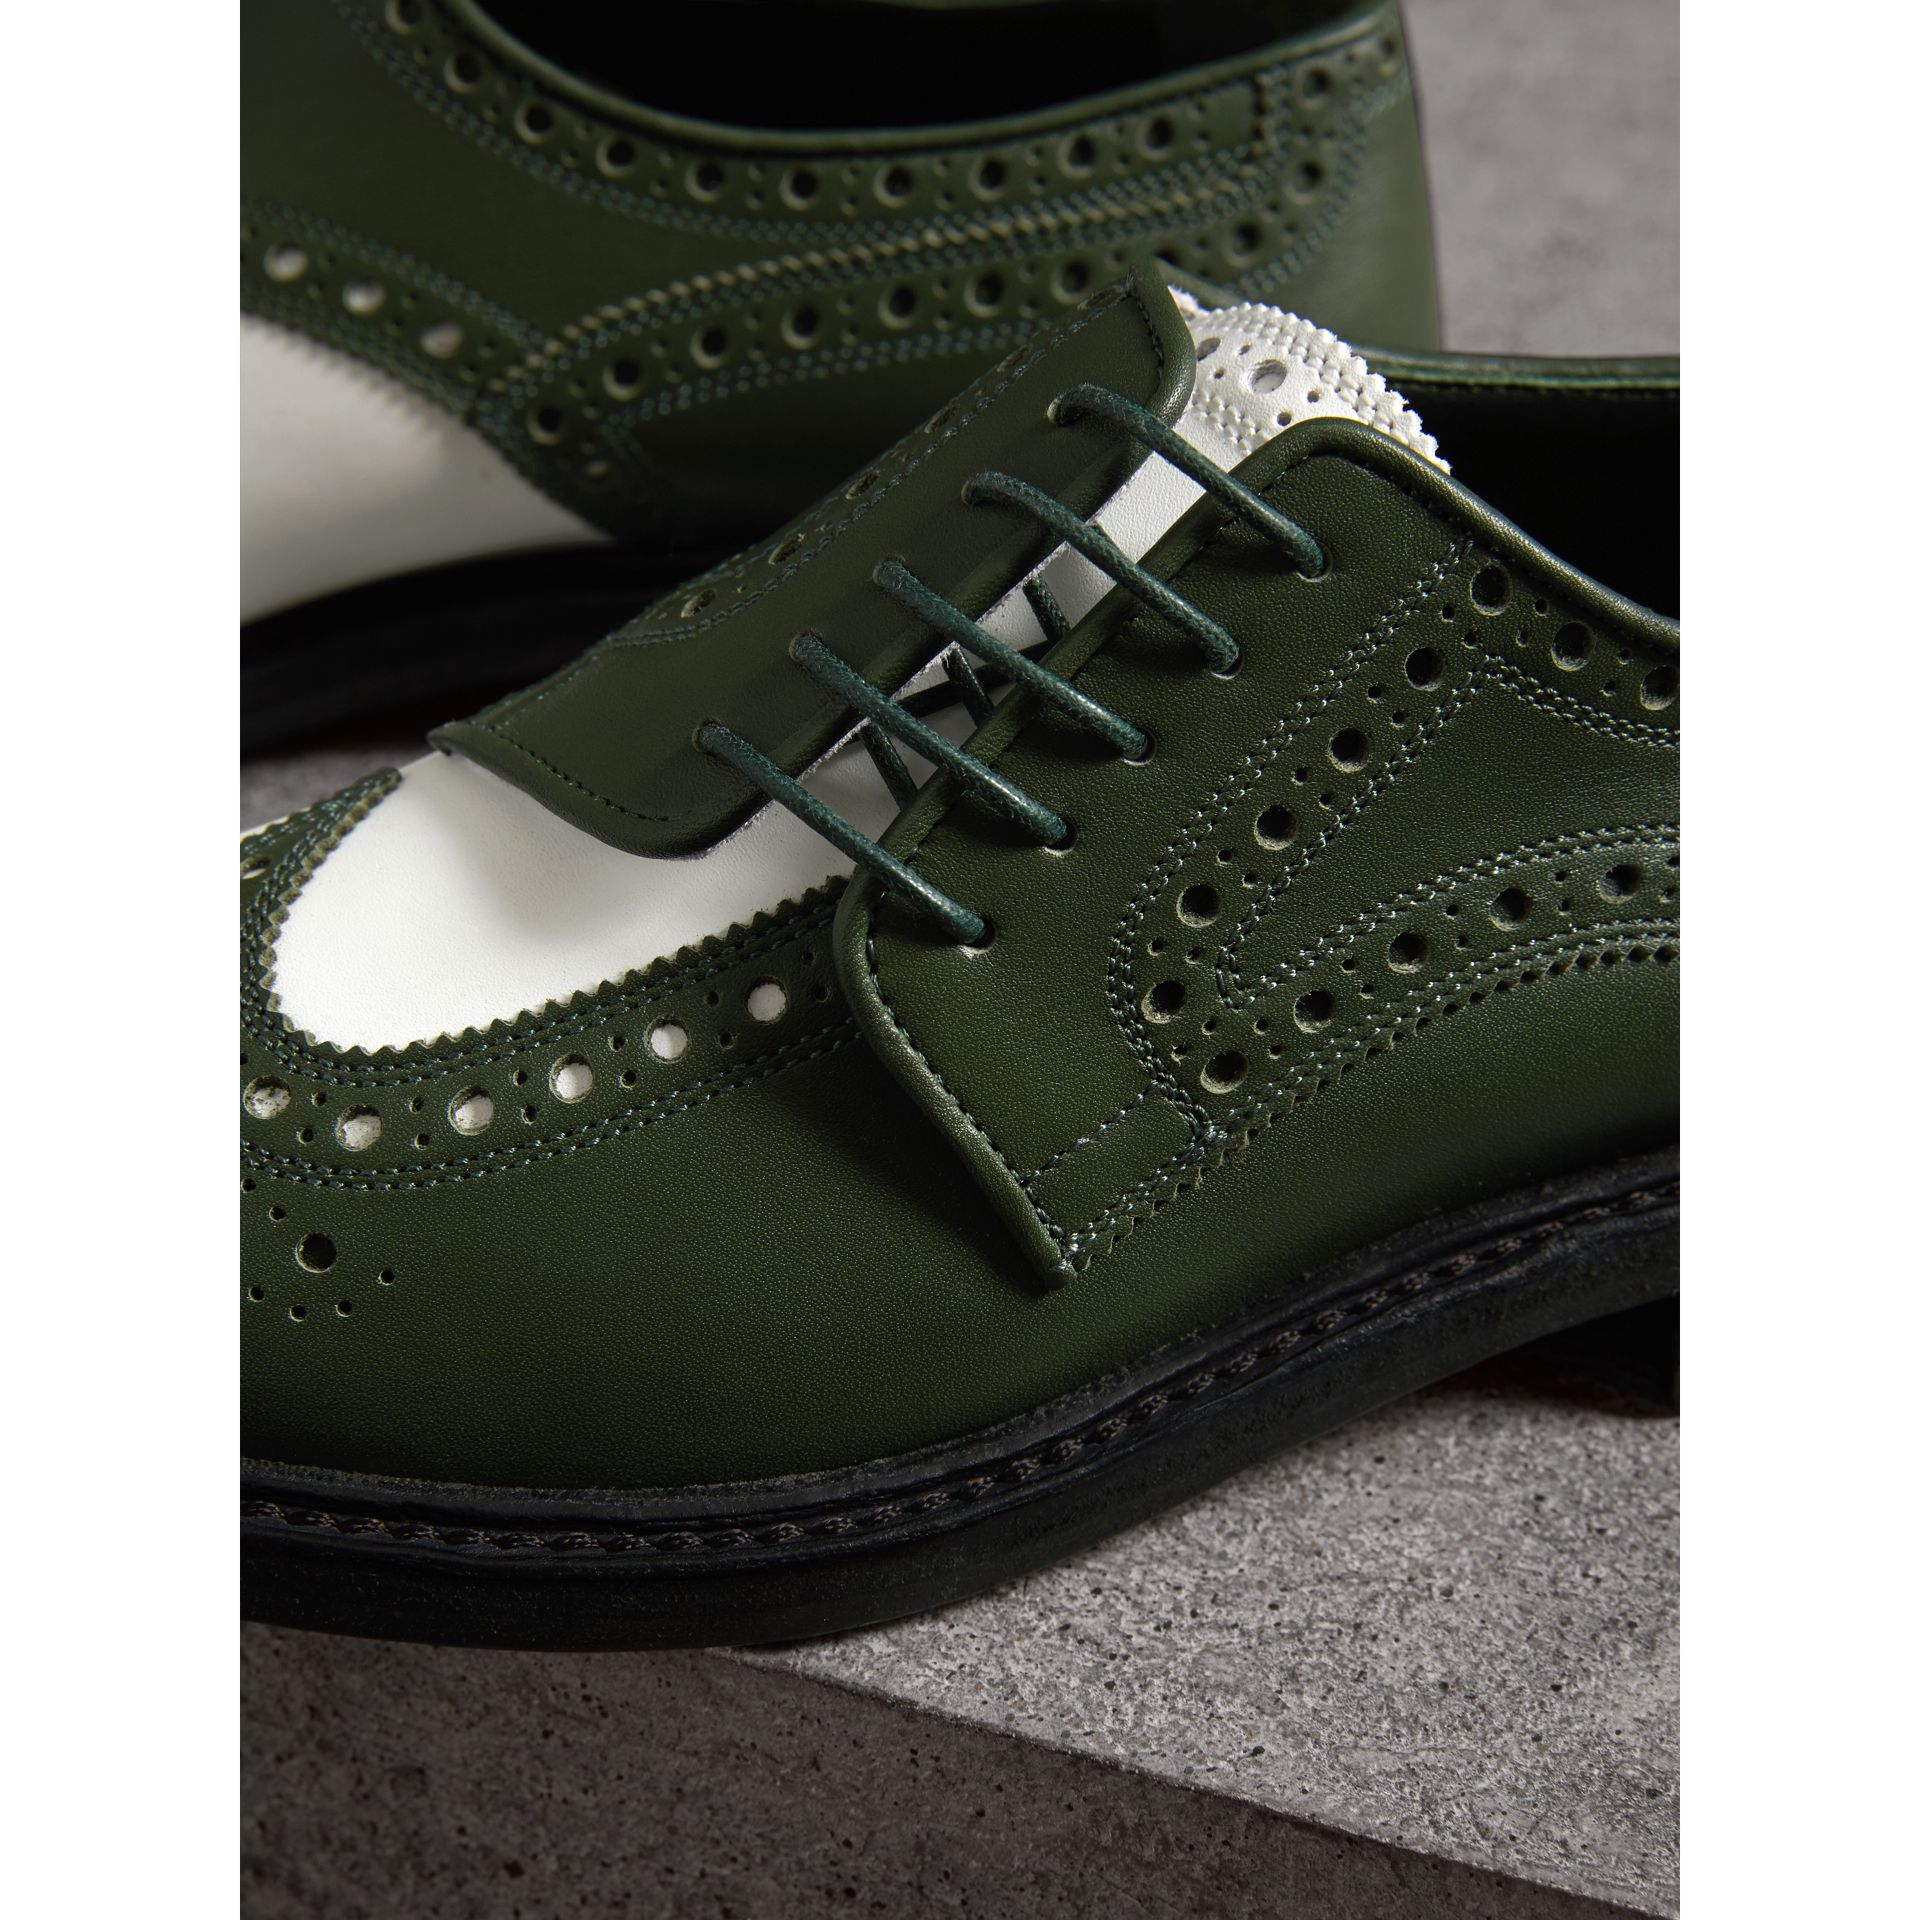 Two-tone Asymmetric Closure Leather Brogues in Dark Green - Women | Burberry United States - gallery image 1